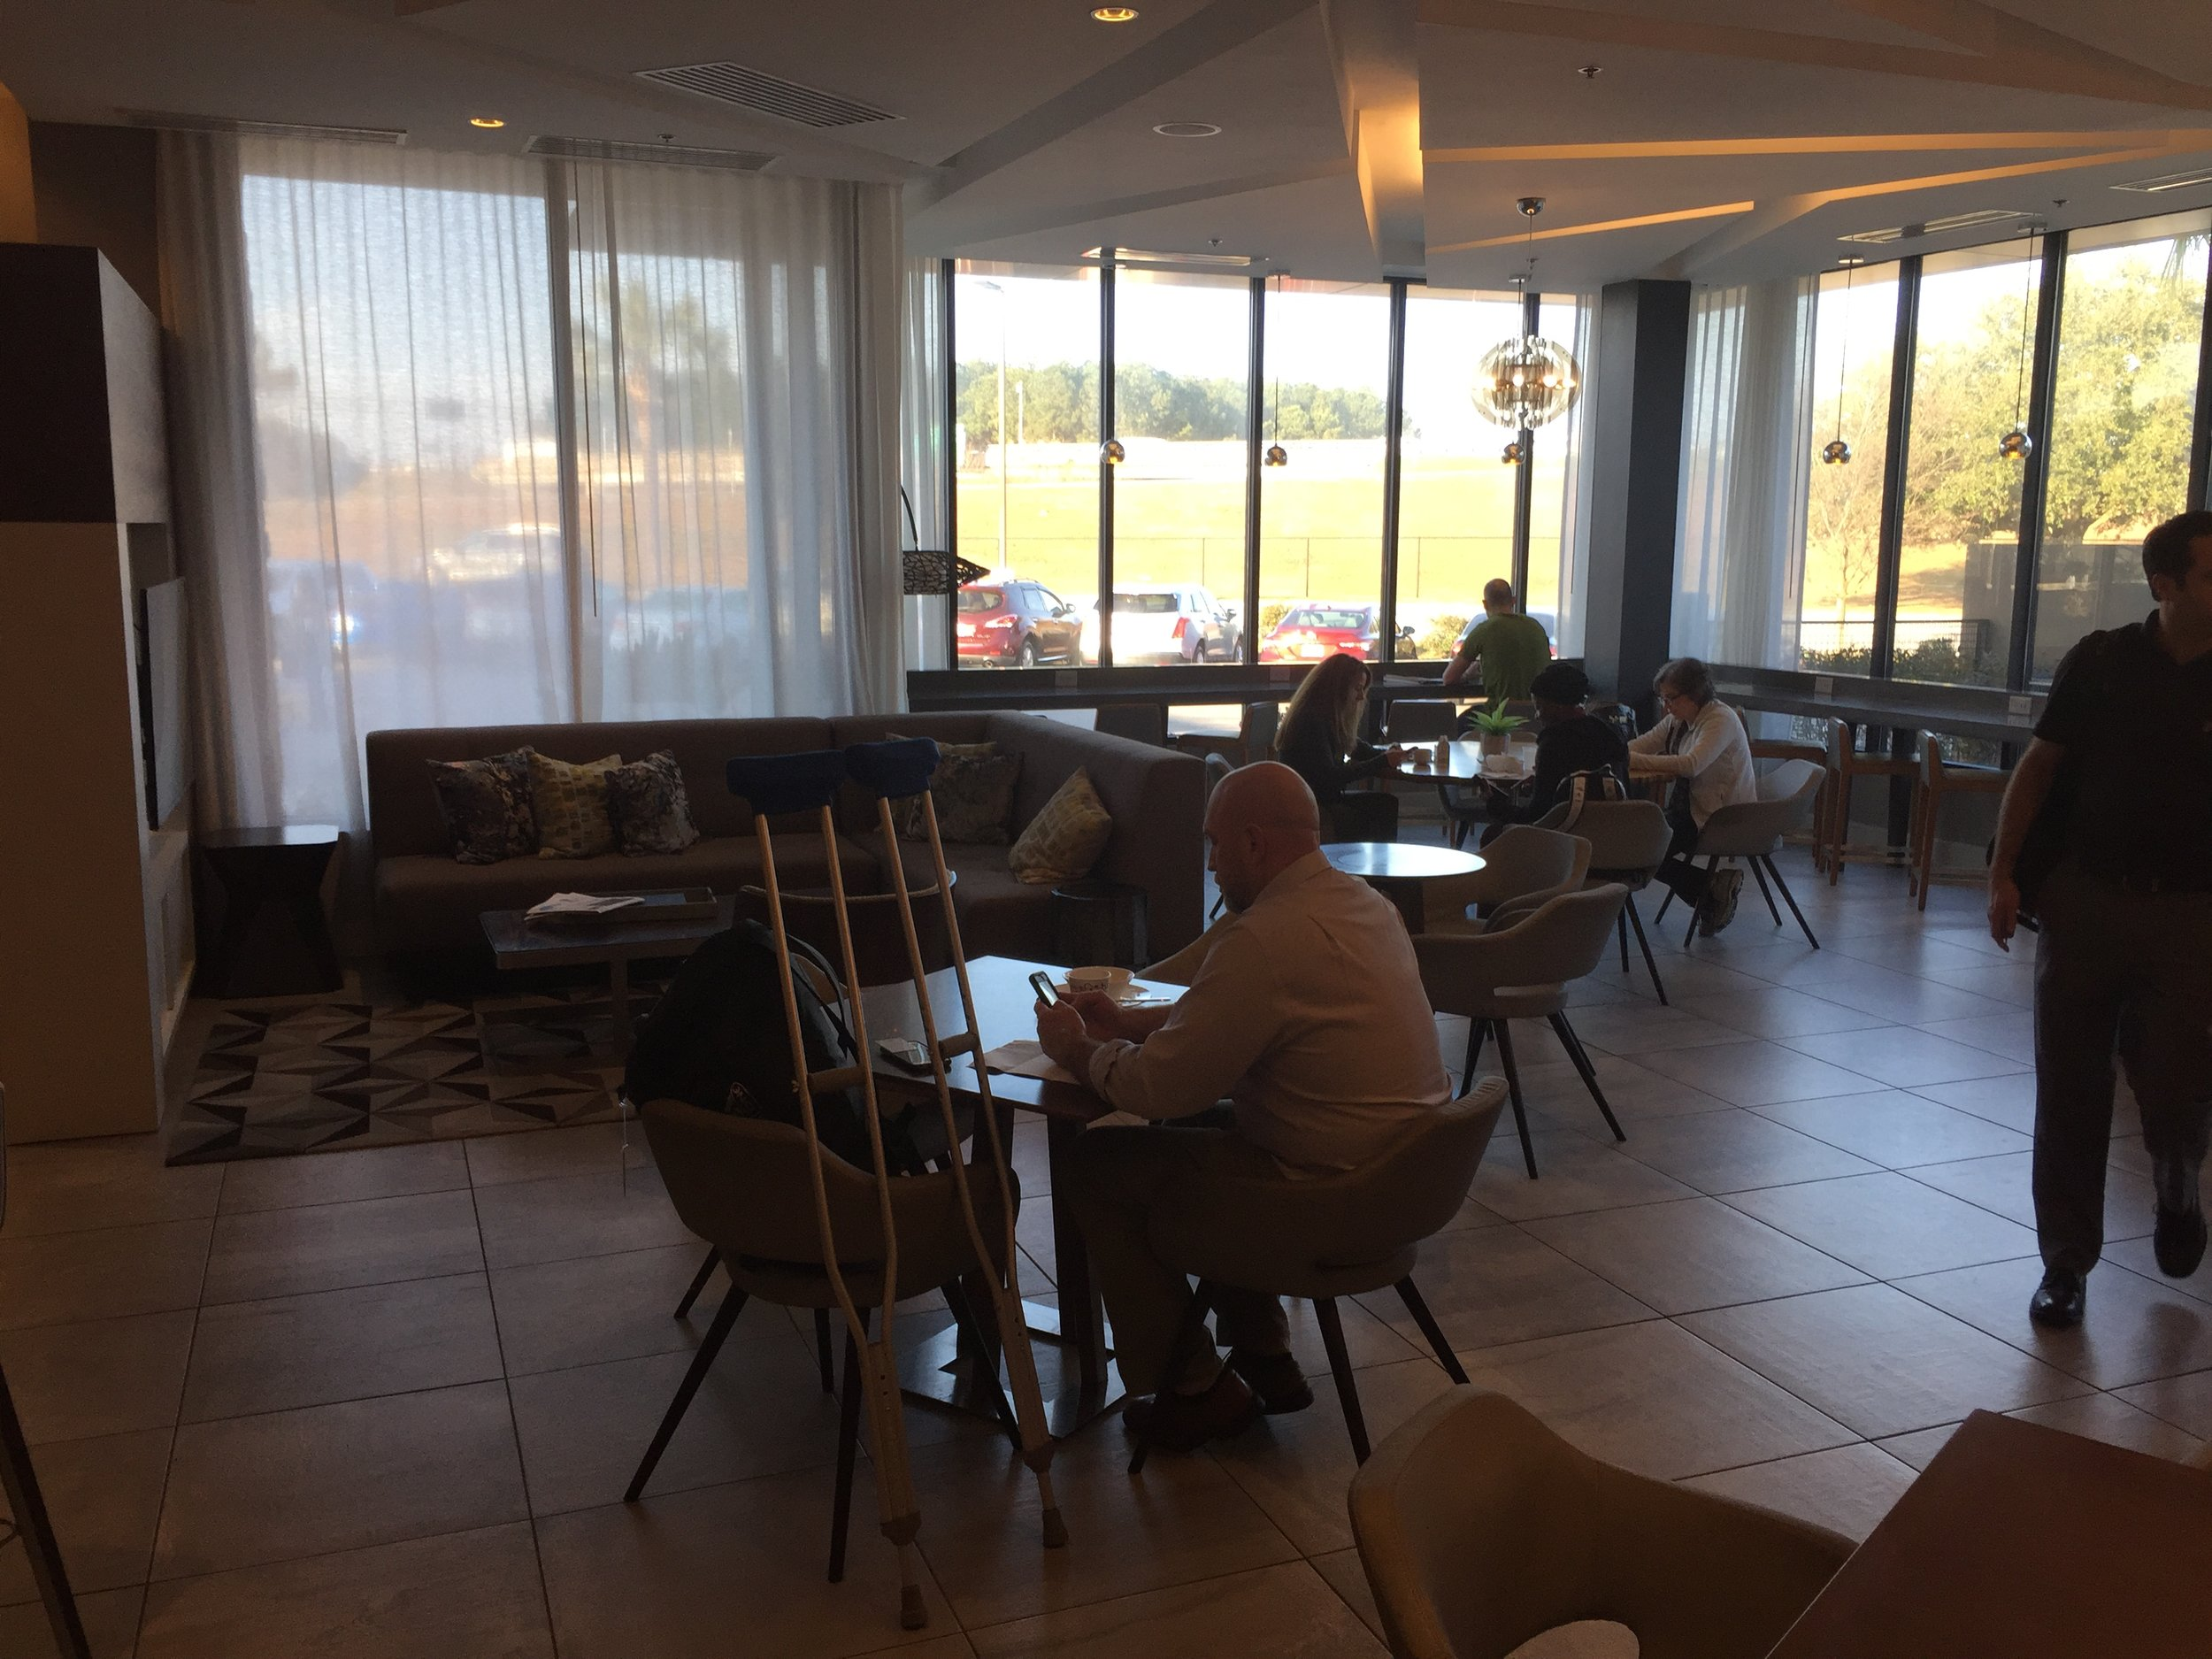 The M Club is located across from the bar and is very spacious.